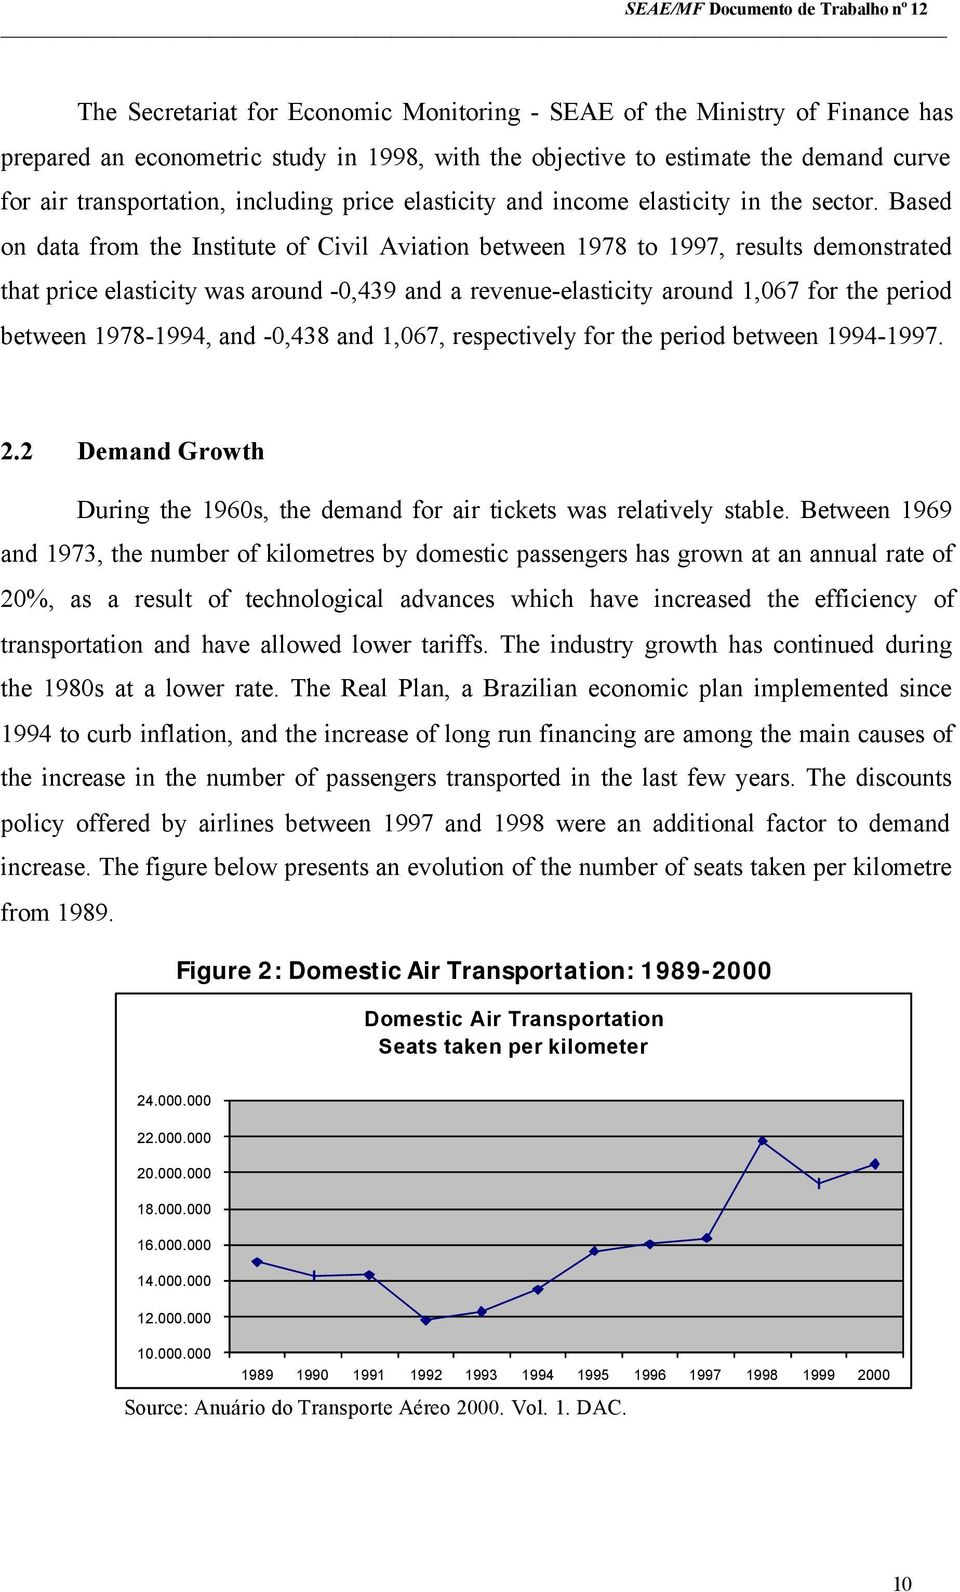 Based on data from the Institute of Civil Aviation between 1978 to 1997, results demonstrated that price elasticity was around -0,439 and a revenue-elasticity around 1,067 for the period between